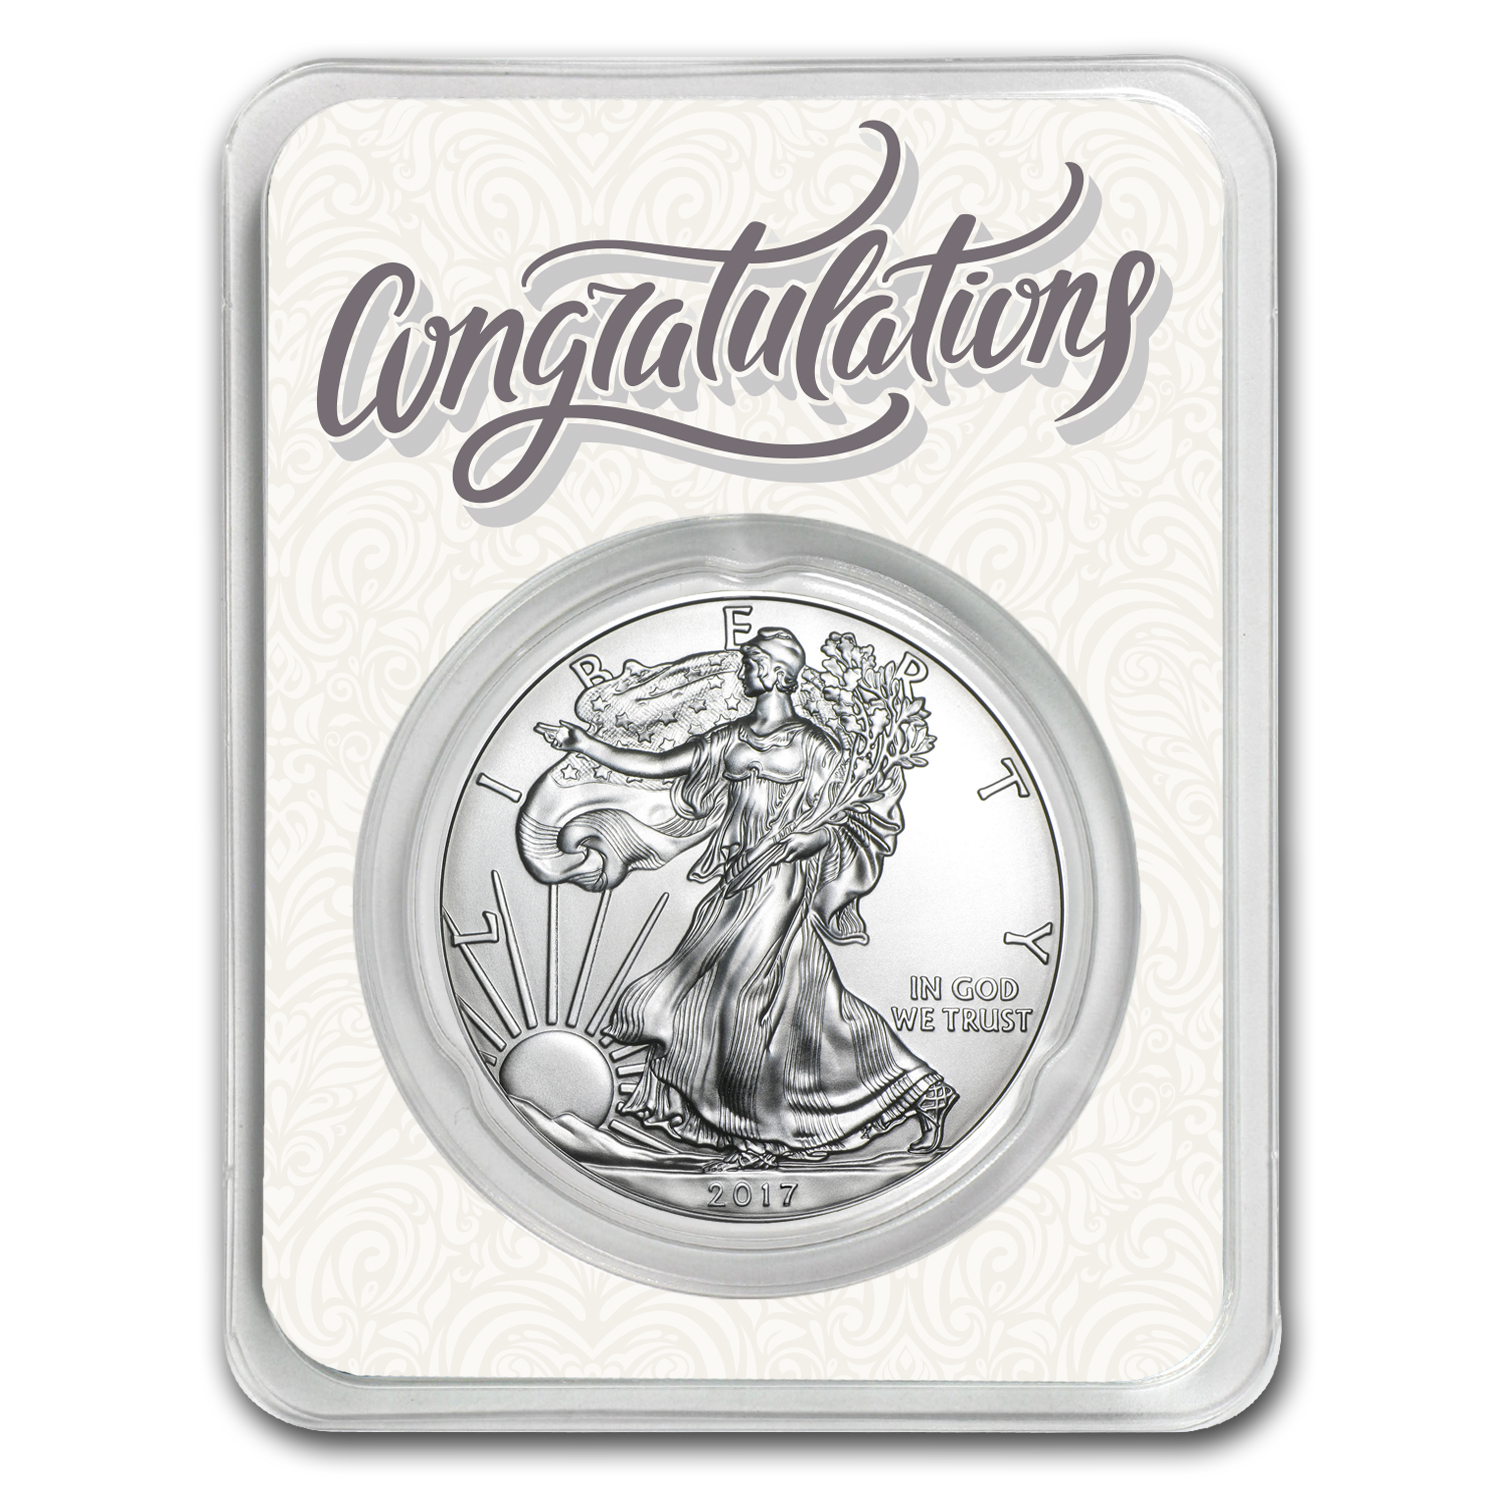 2017 1 oz Silver American Eagle - Just Married Congratulations